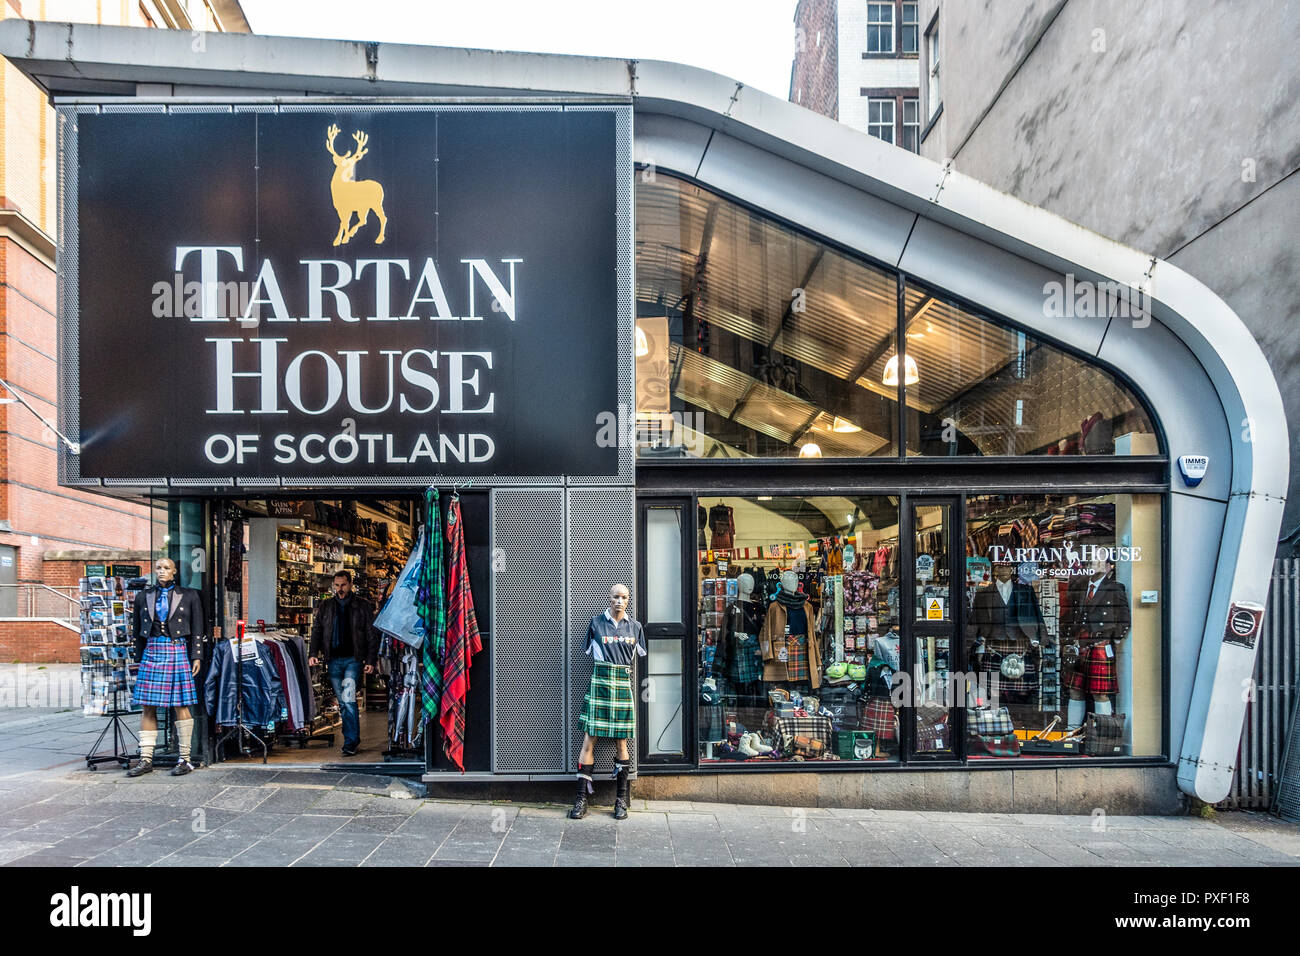 Customer leaving the main entrance of the Tartan House of Scotland shop, a Scottish souvenir shop, in Buchanan Street, Glasgow, Scotland, UK - Stock Image